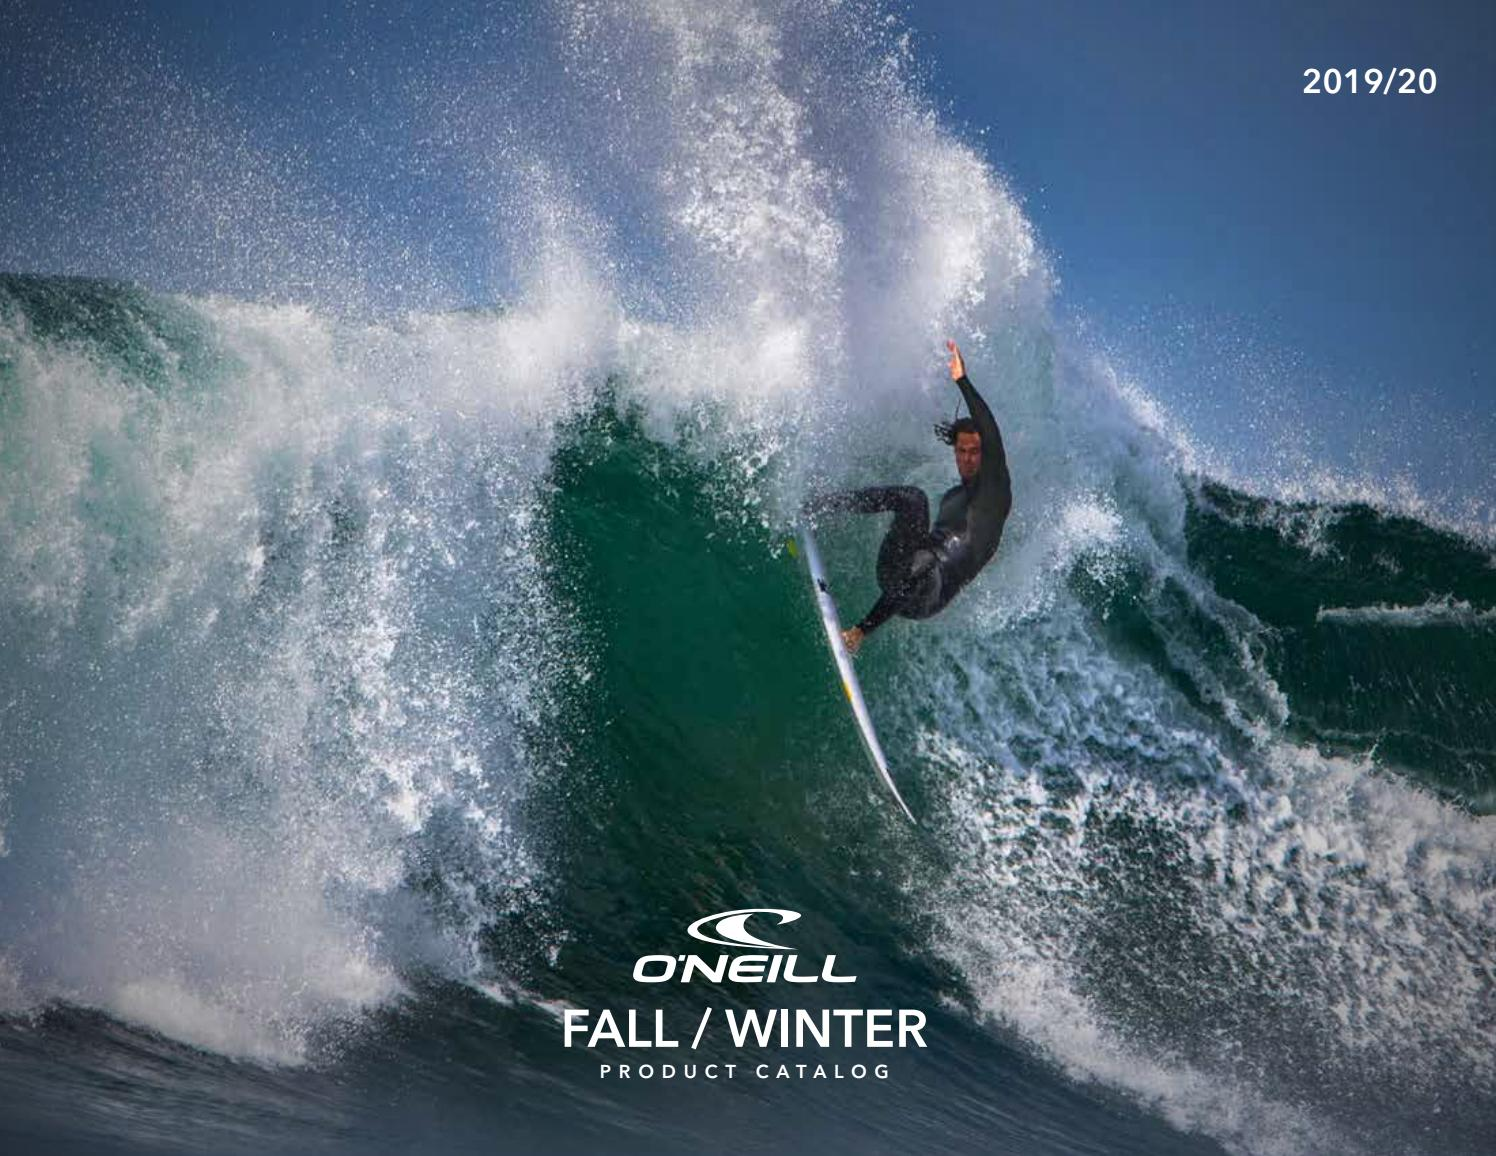 d7e8c8542 F19 O'Neill Wetsuits Catalog by O'Neill Wetsuits, LLC - issuu